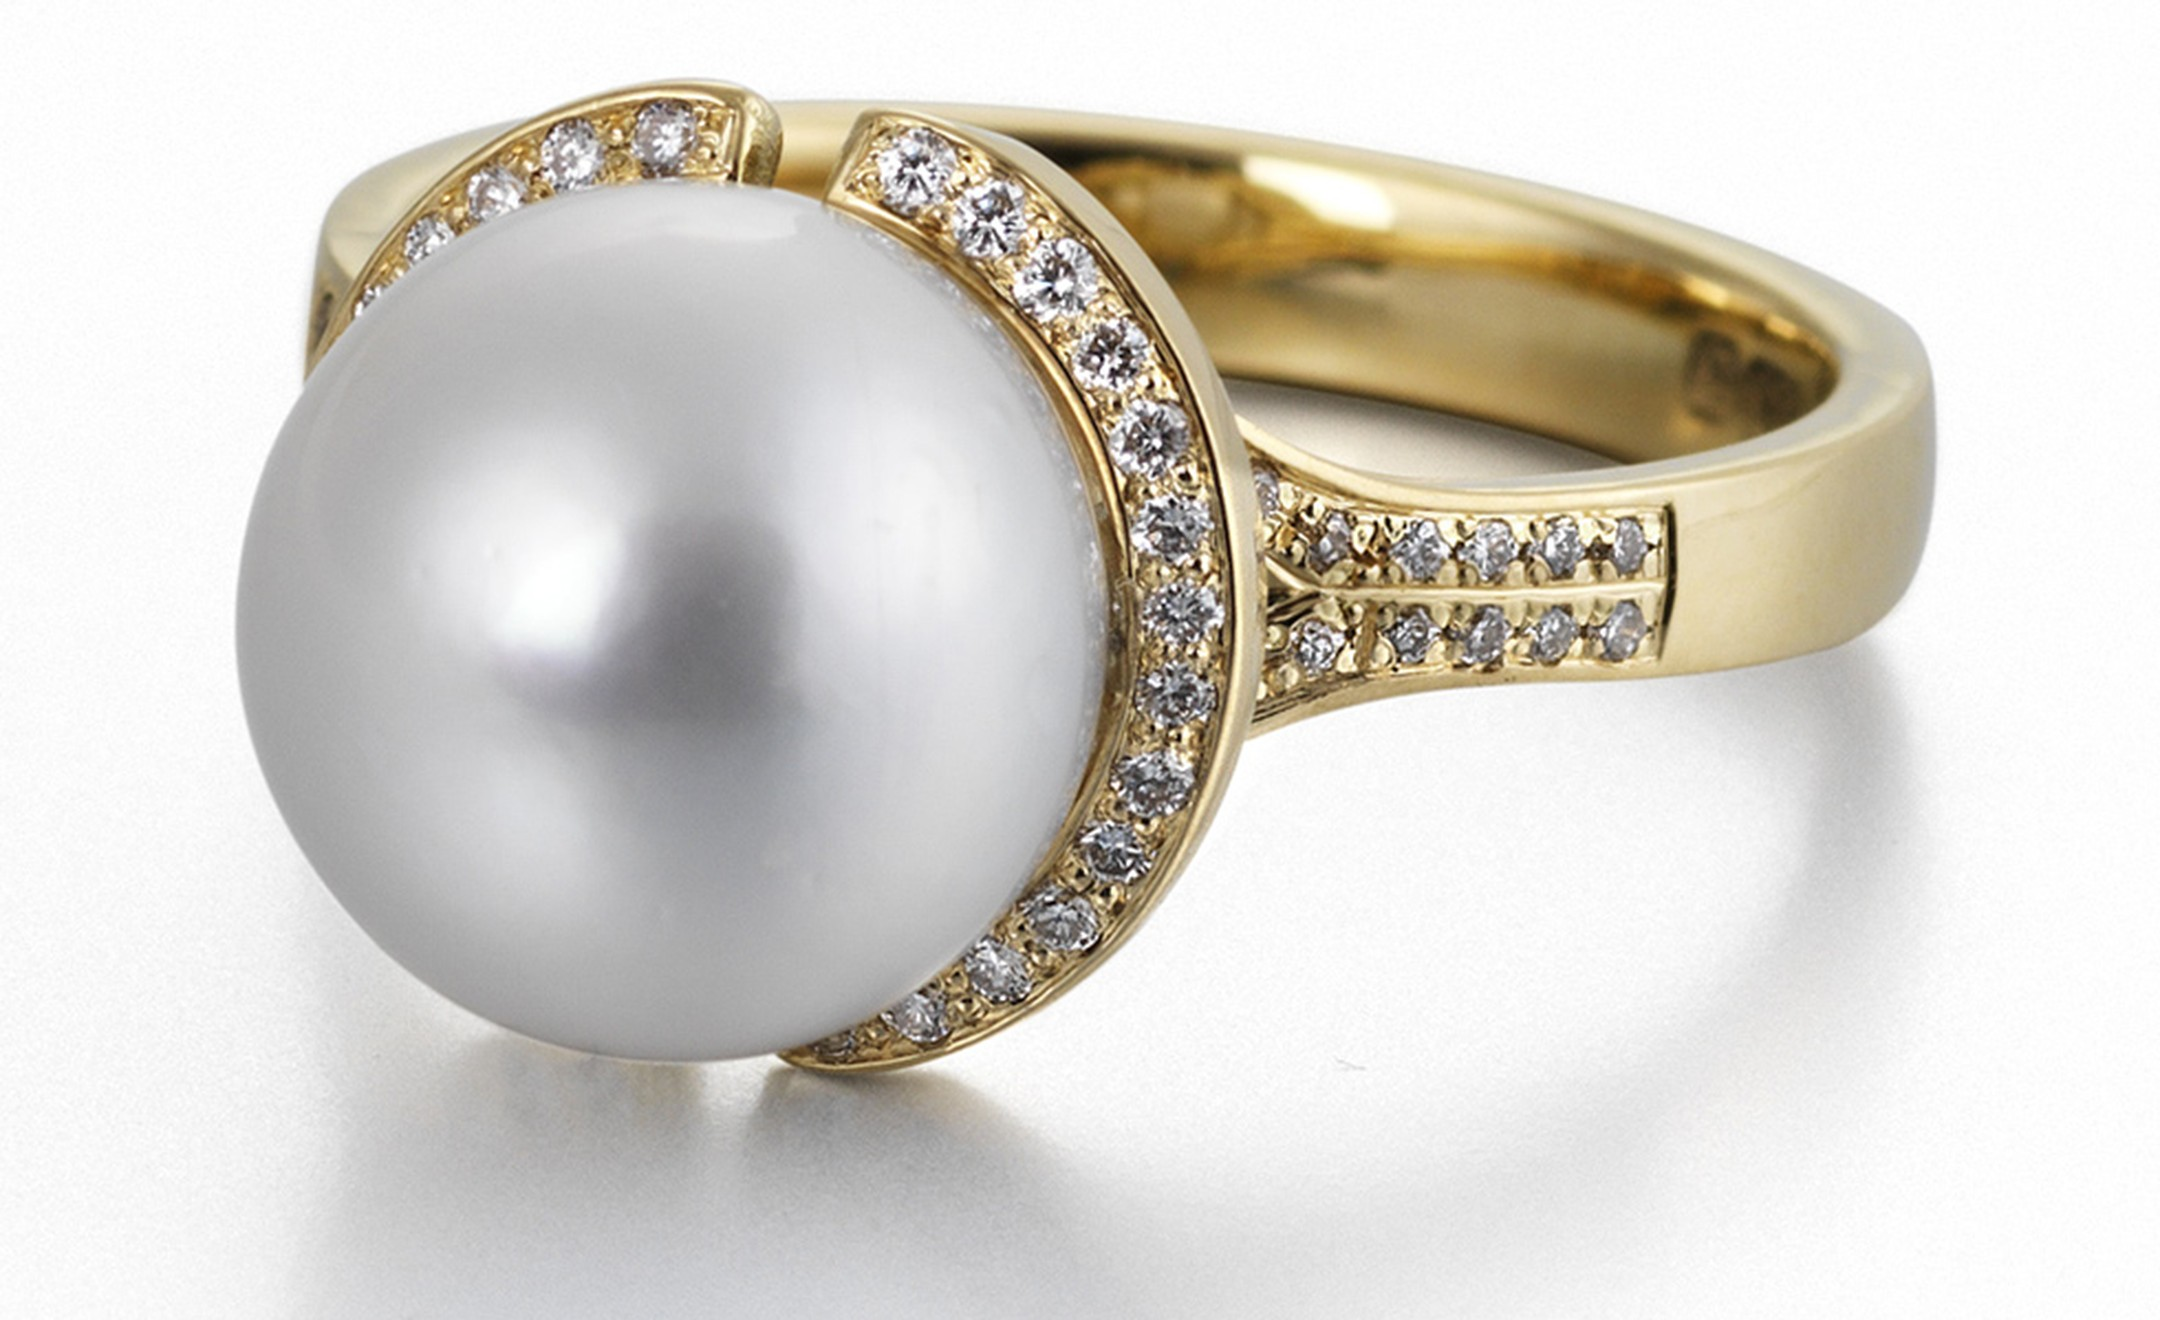 18 carat yellow gold, diamond and south sea pearl ring by James Newman. Price from £2,850